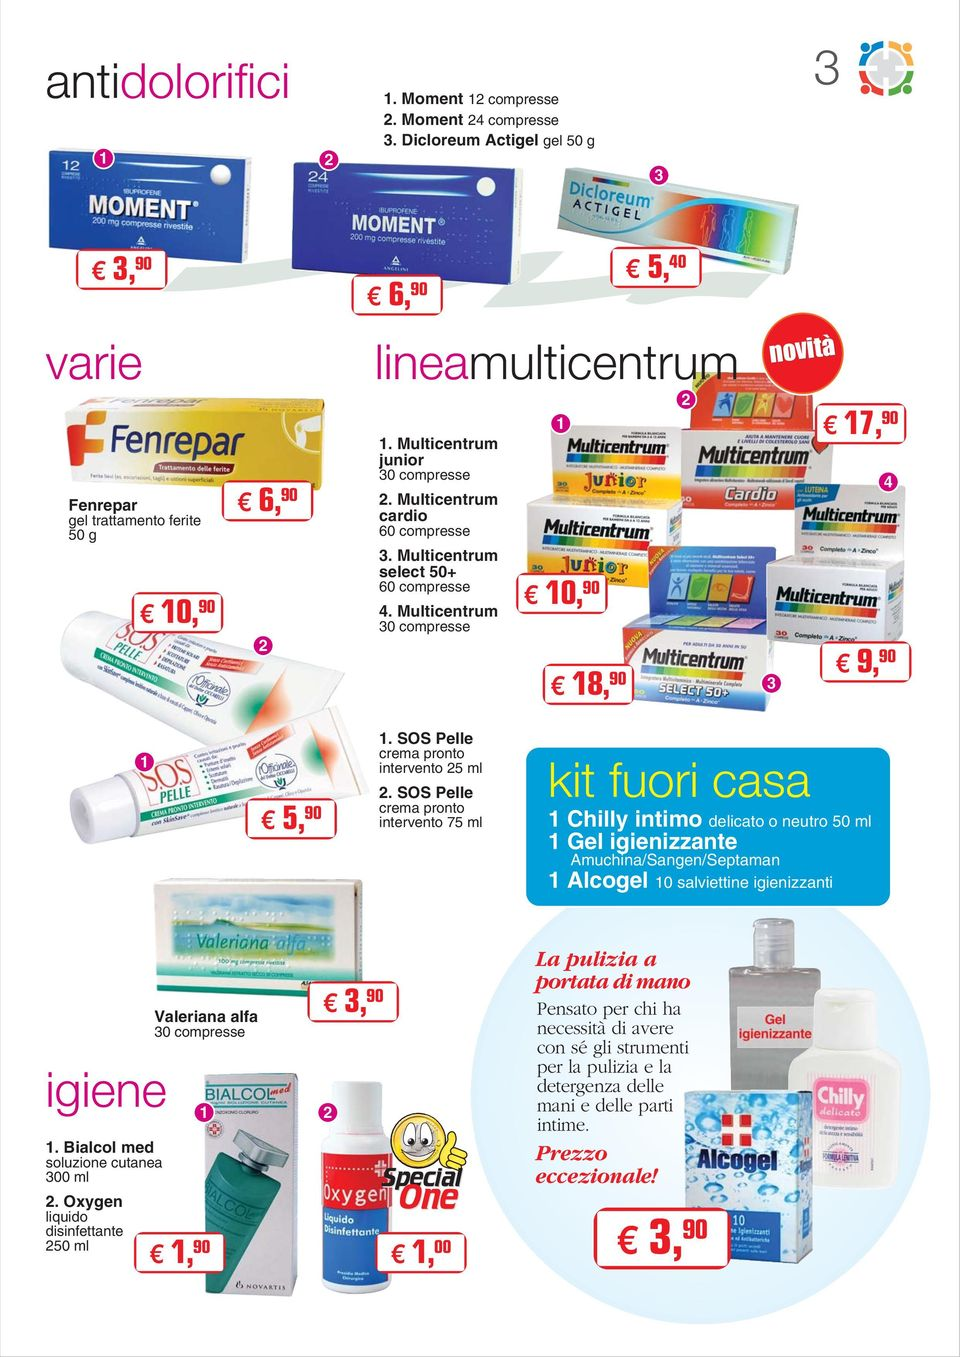 SOS Pelle crema pronto intervento 7 ml Chilly intimo delicato o neutro 0 ml Gel igienizzante Amuchina/Sangen/Septaman Alcogel 0 salviettine igienizzanti. Bialcol med soluzione cutanea 00 ml.